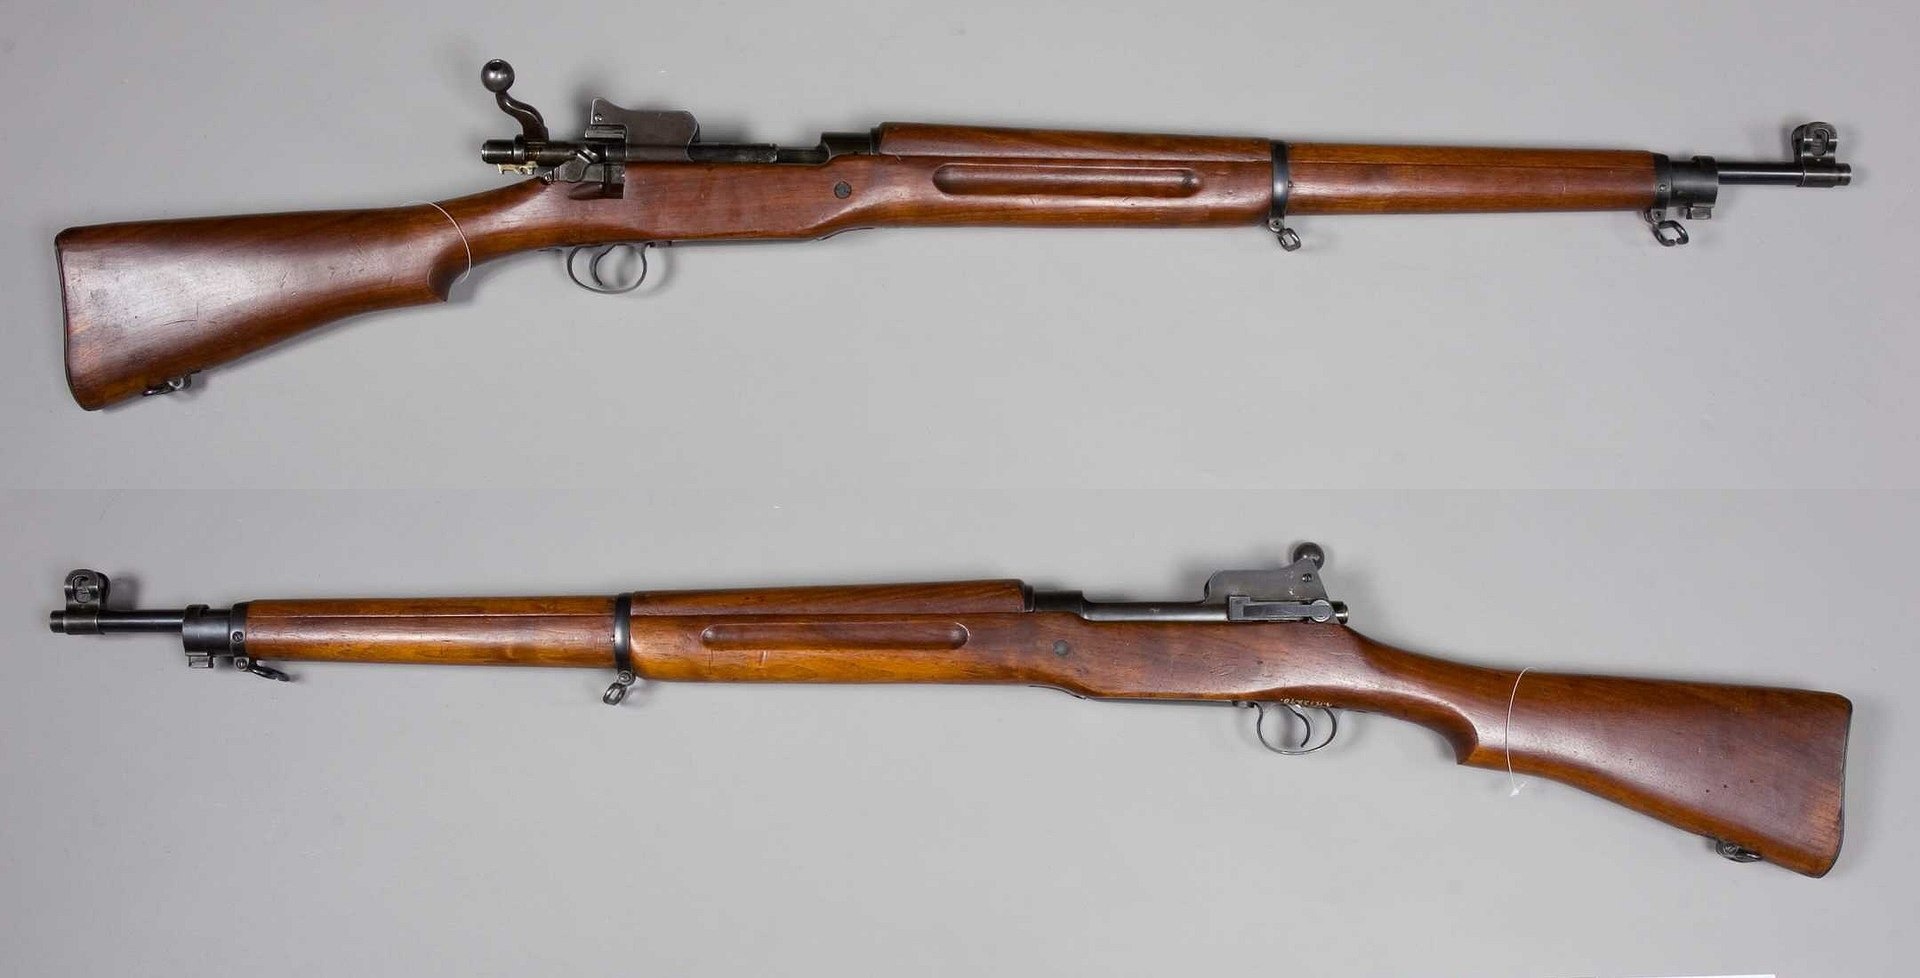 M1917 Enfield rifle from the collections of Armémuseum, Stockholm, Sweden